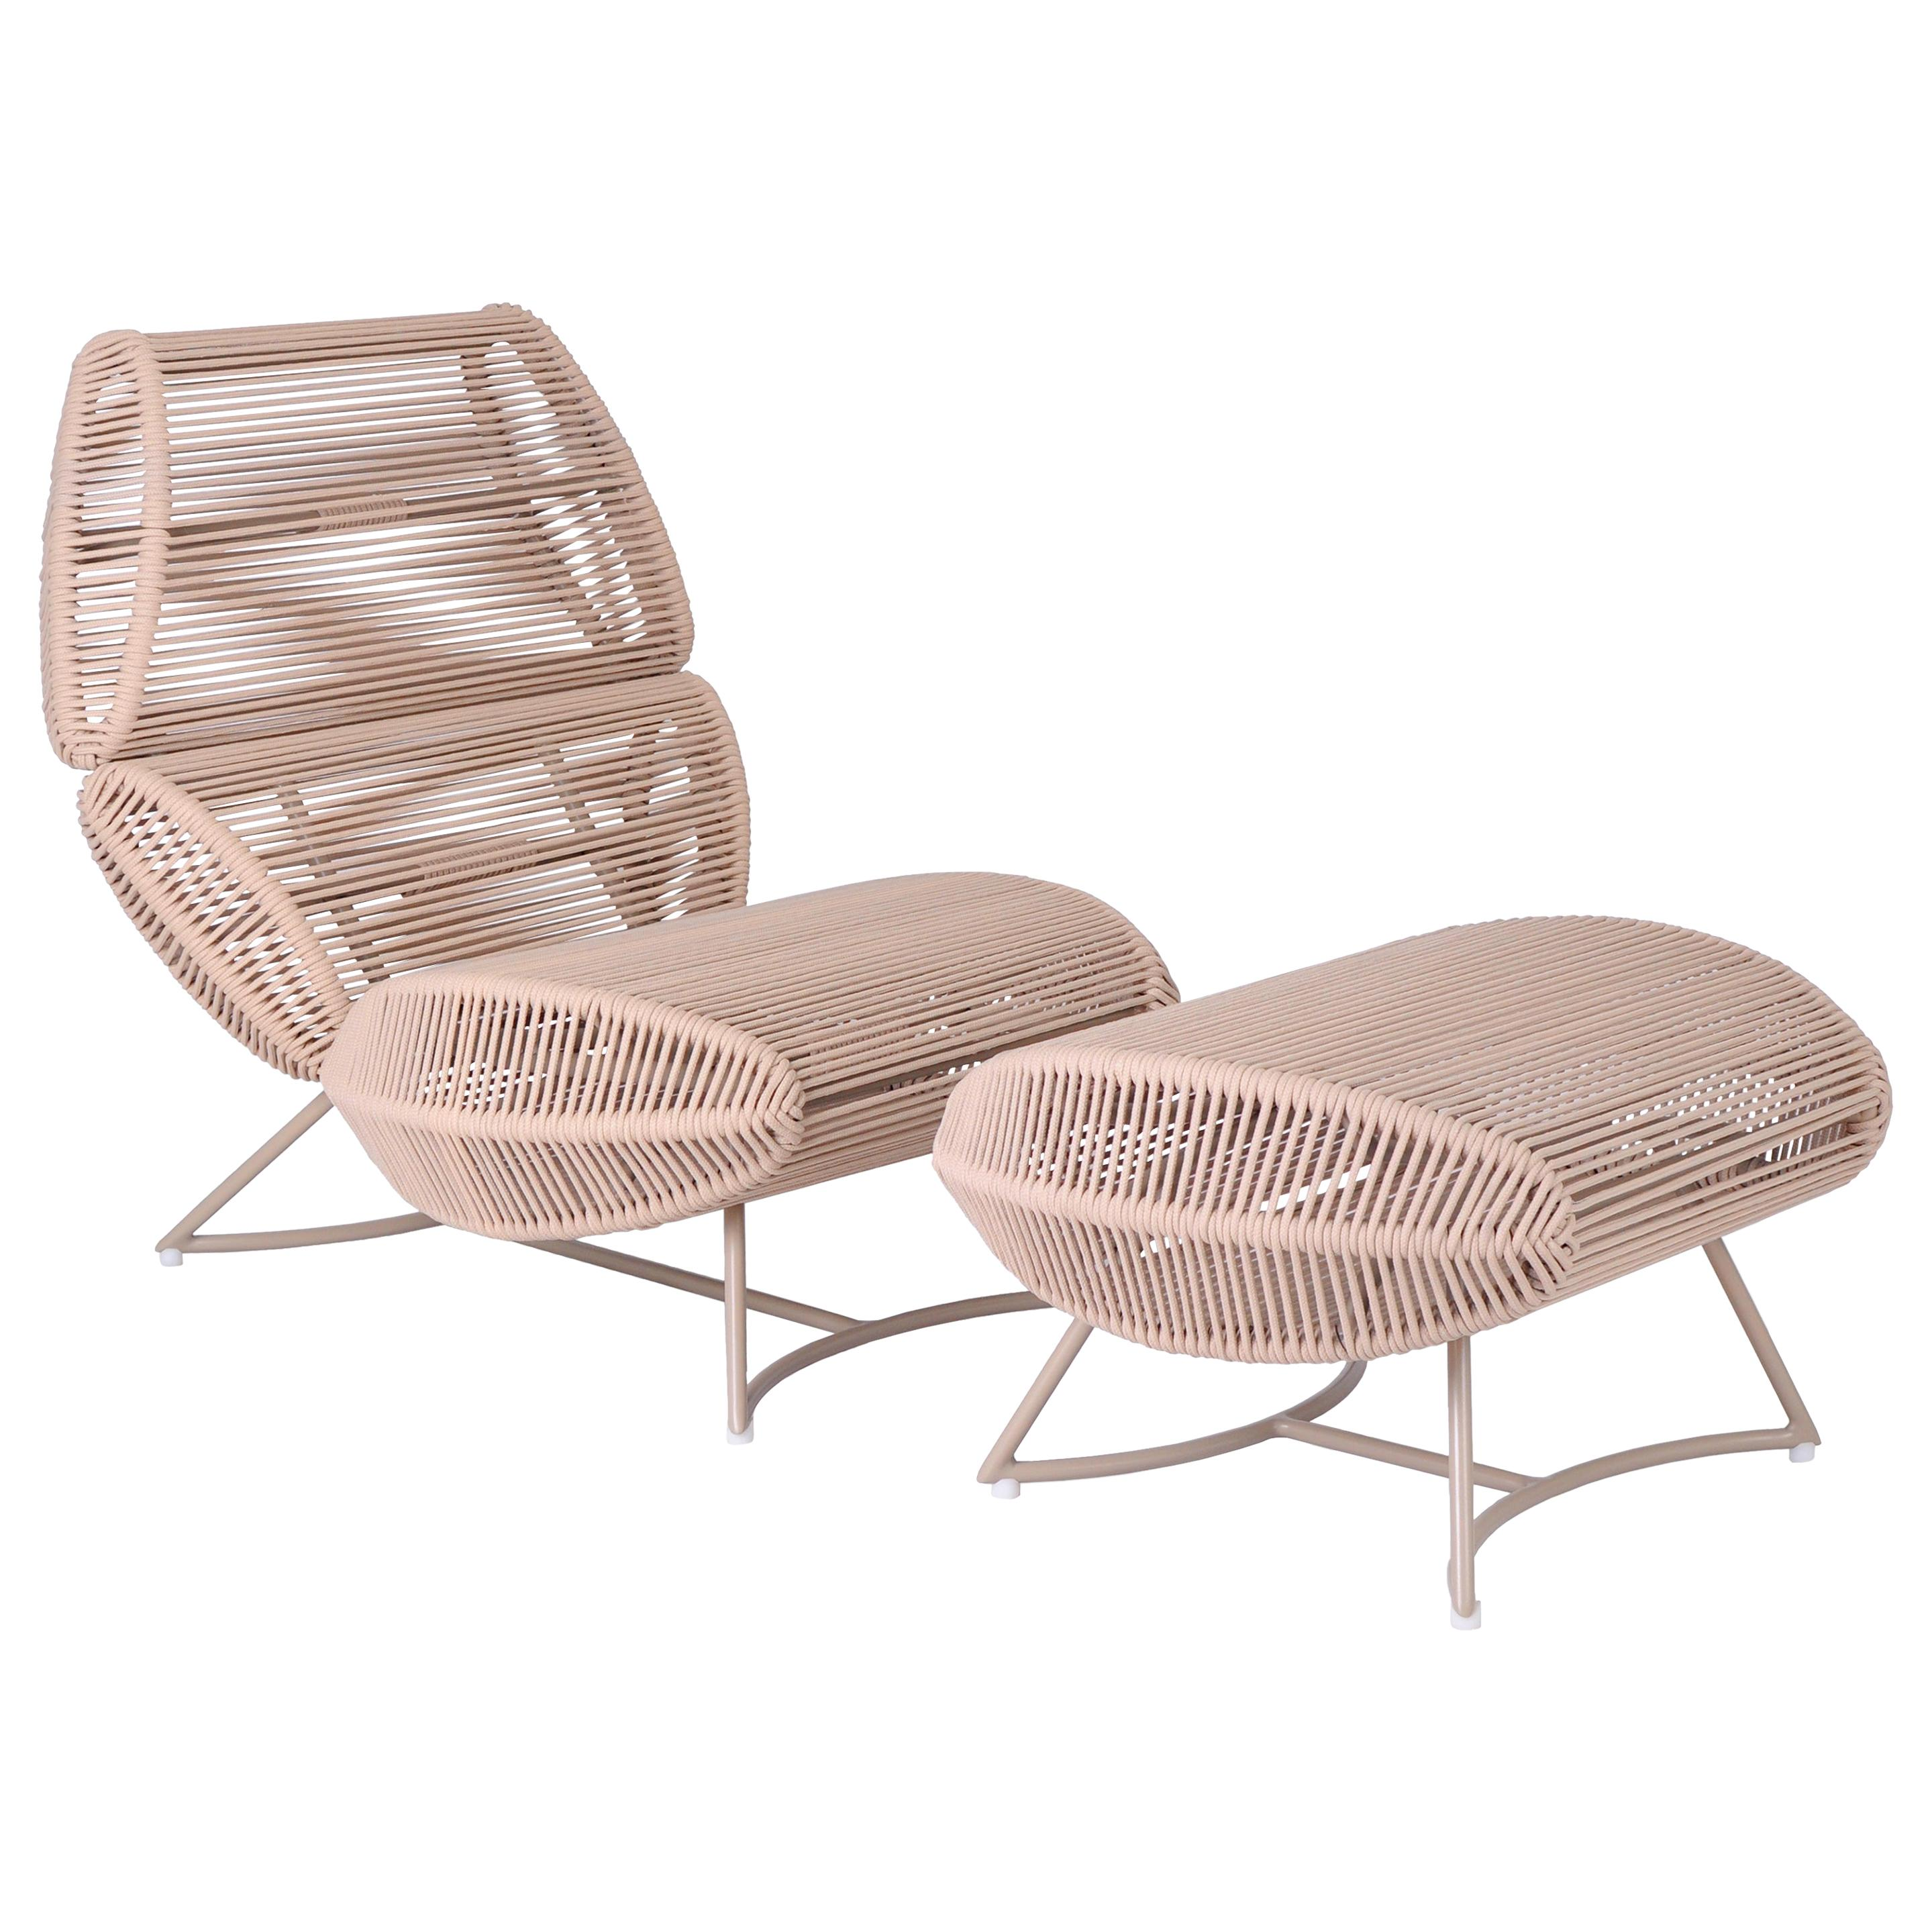 Morototó Armchair with Foot Support